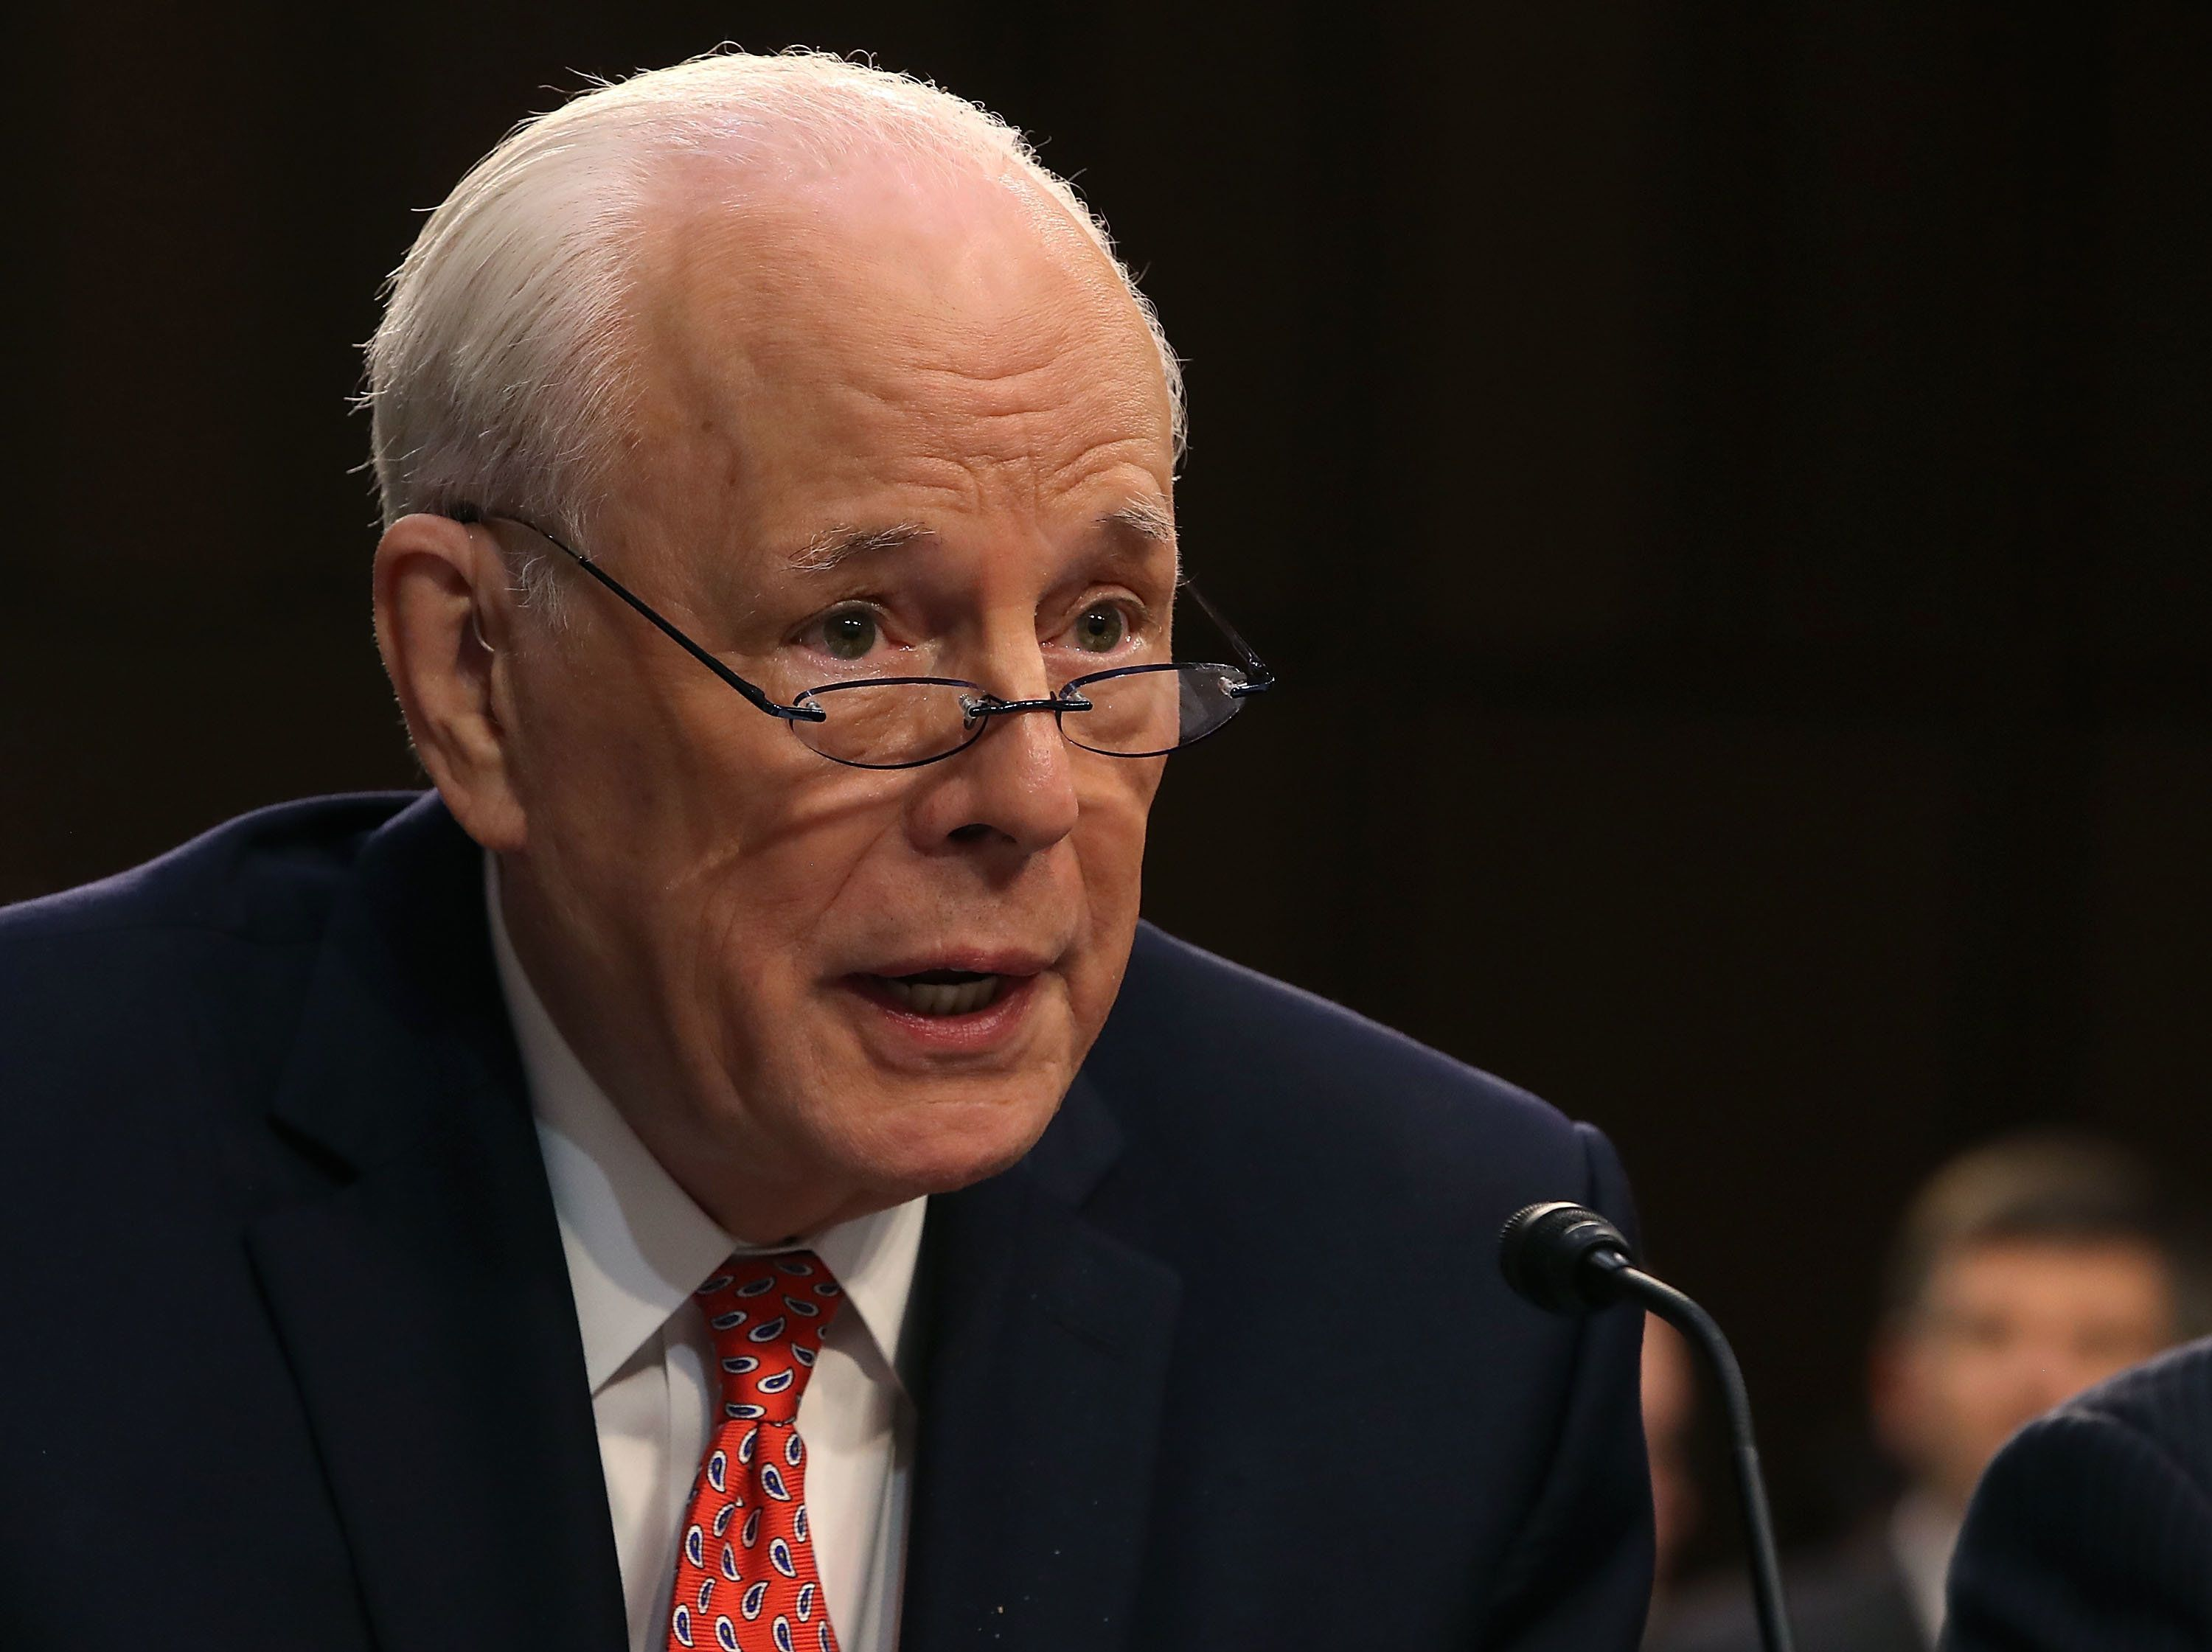 WASHINGTON, DC - SEPTEMBER 07:  John Dean, former White House counsel to President Nixon, speaks during a hearing on the nomination of federal appeals court judge Brett Kavanaugh to be an associate justice on the U.S. Supreme Court, in the Hart Senate Office Building on September 7, 2018 in Washington, DC. Kavanaugh was nominated by President Donald Trump to fill the vacancy on the court left by retiring Associate Justice Anthony Kennedy.  (Photo by Mark Wilson/Getty Images)